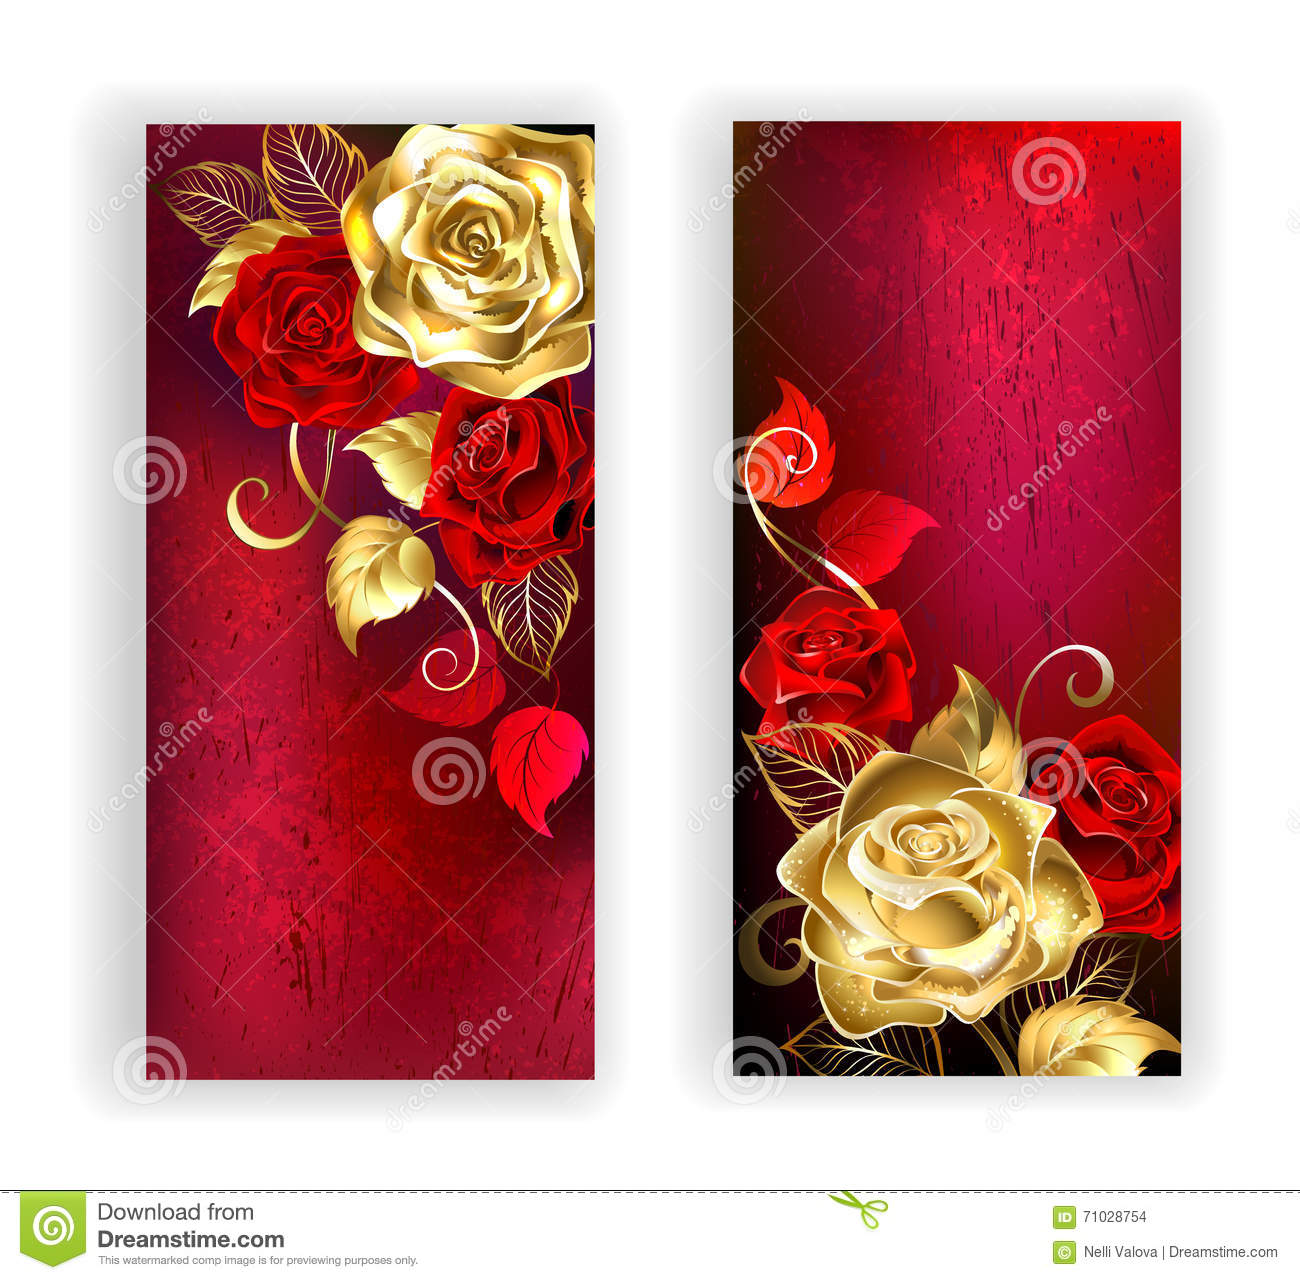 ... gold and red roses on red textural background. Design with roses. Gold